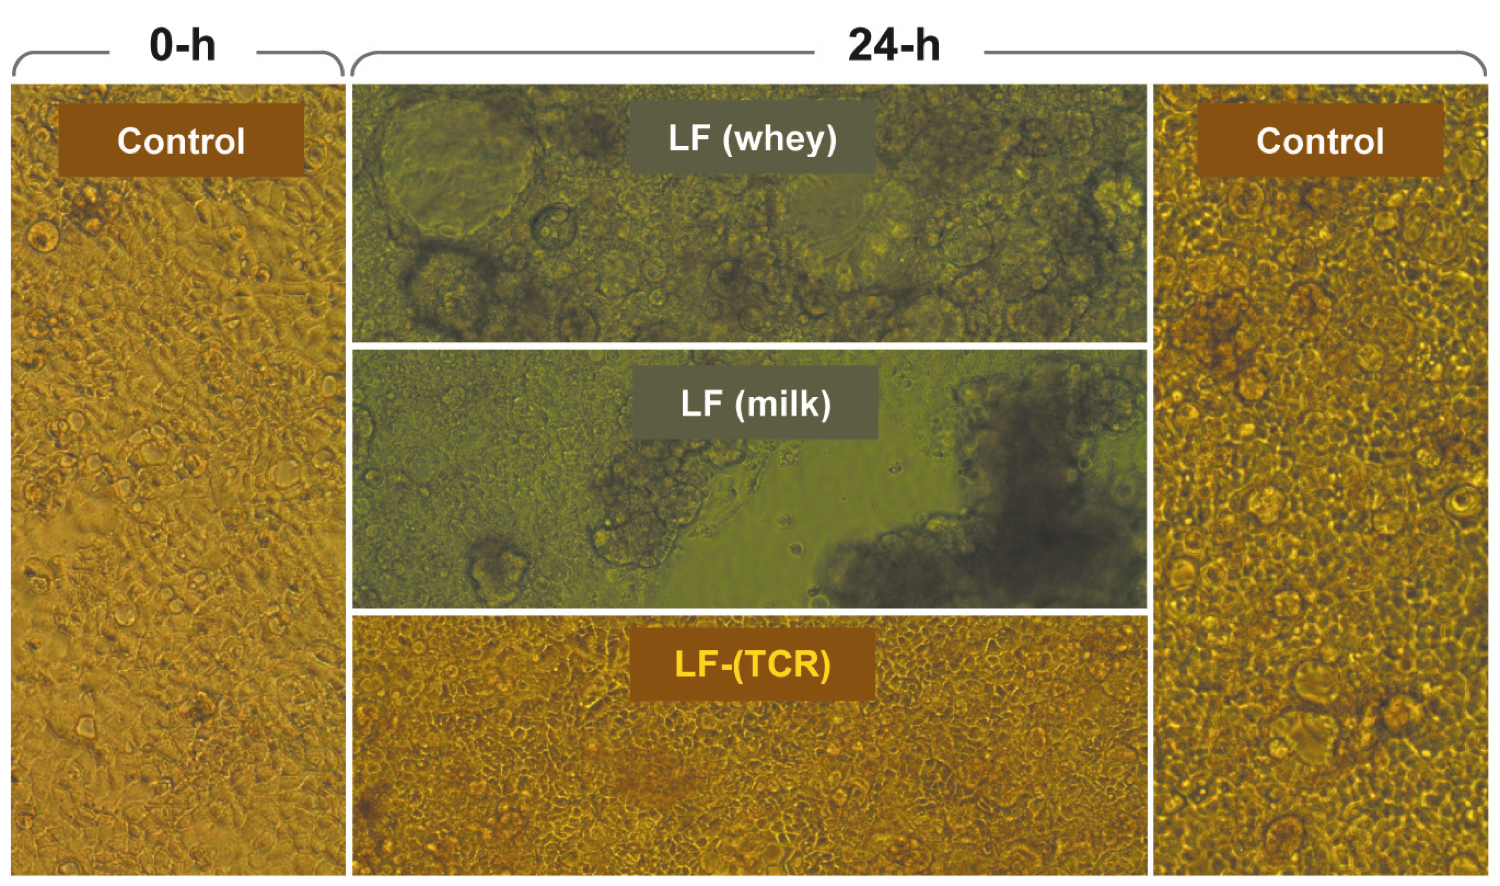 intestinal cell lining preserved by lactoferrin TCR